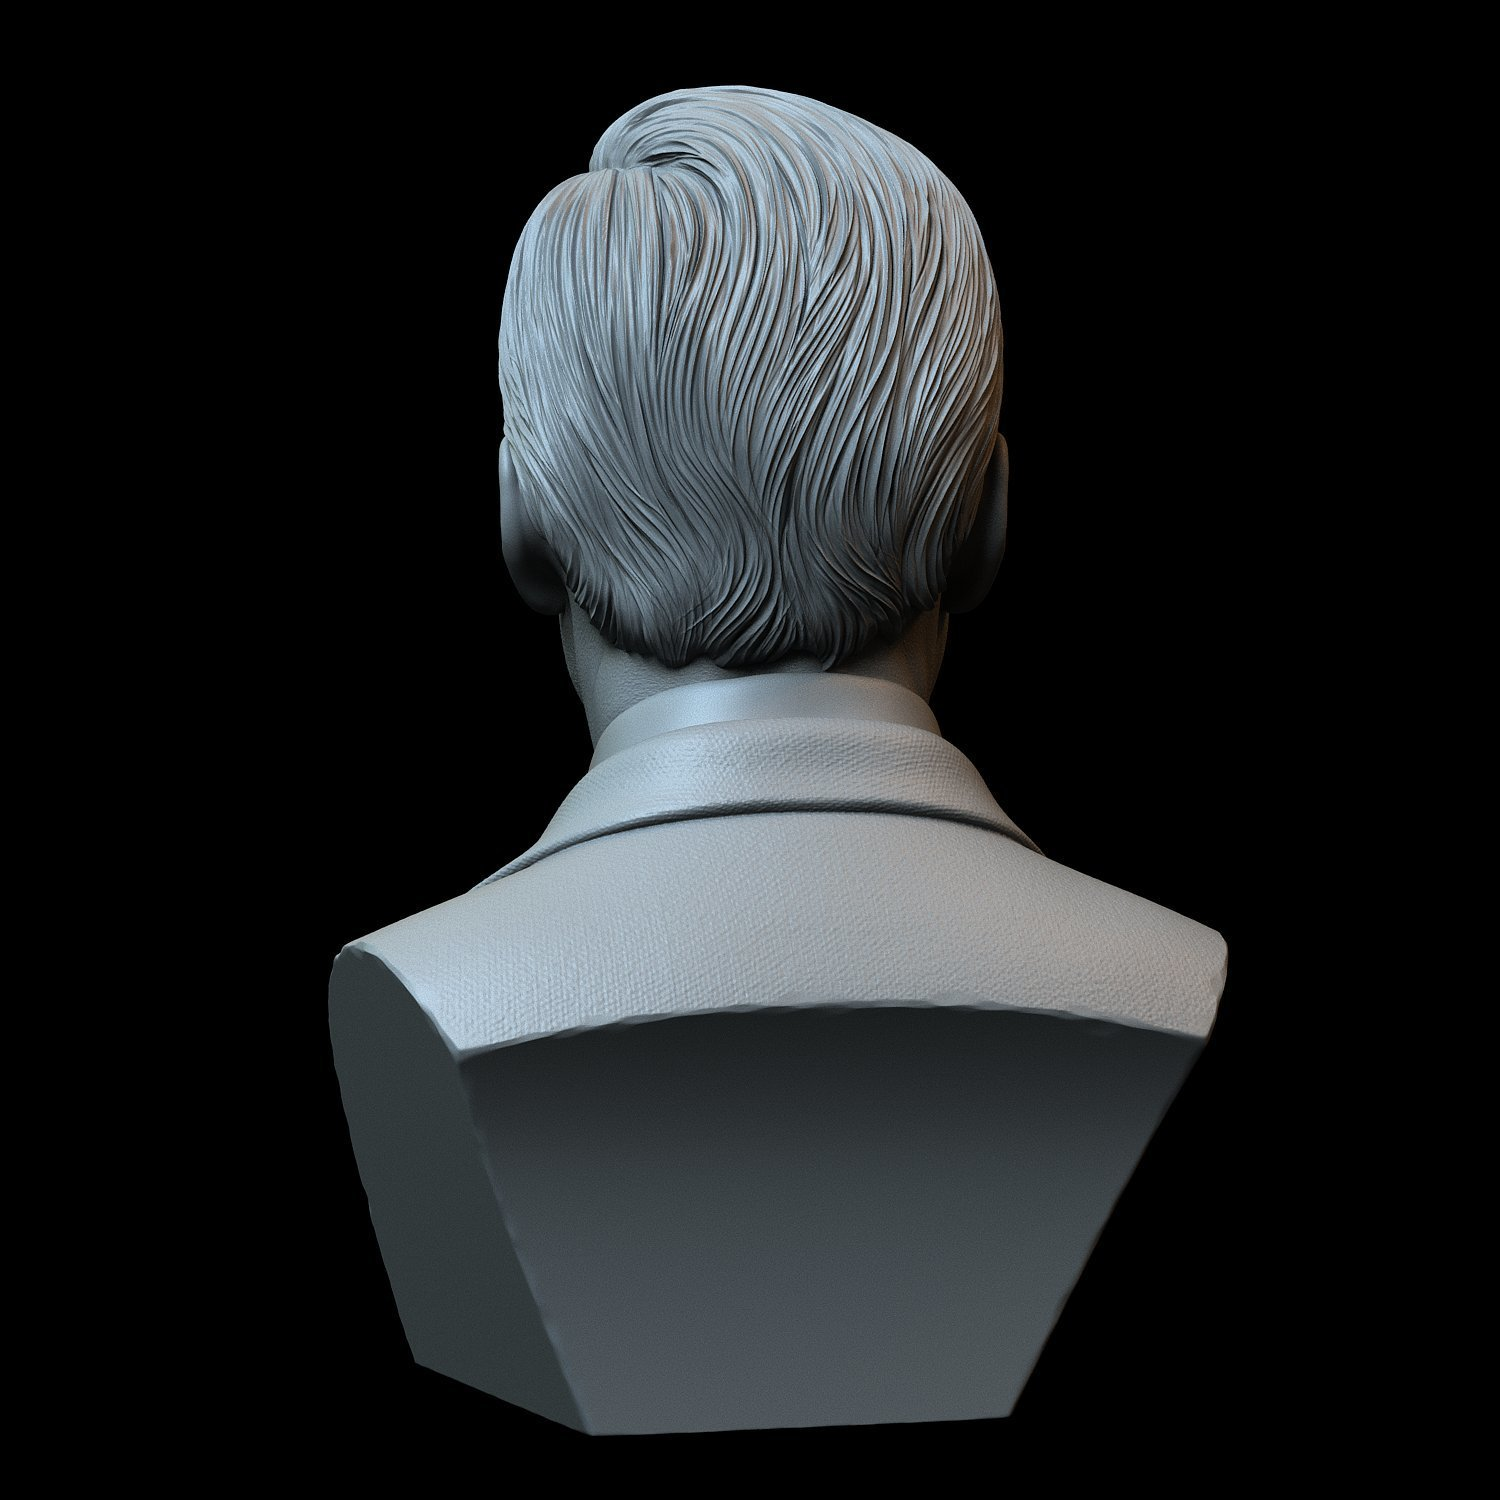 Saul05.jpg Download STL file Saul Goodman aka Jimmy McGill (Bob Odenkirk) from Breaking Bad and Better Call Saul • Model to 3D print, sidnaique